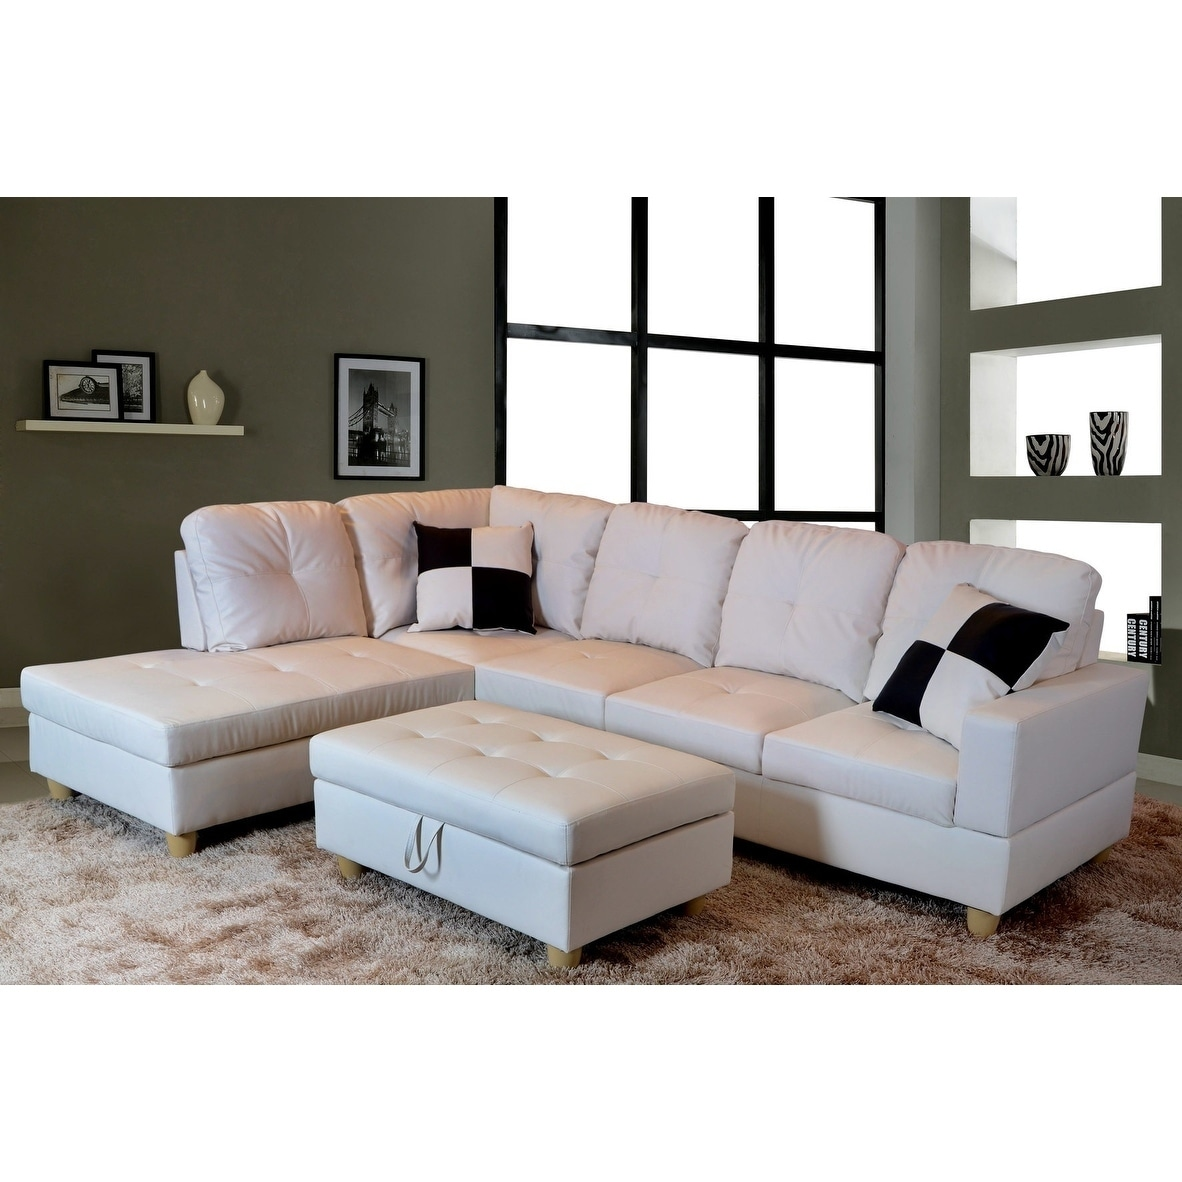 Exceptionnel Golden Coast Furniture Modern 3 Piece Faux Leather Sofa Sectional With  Ottoman Storage